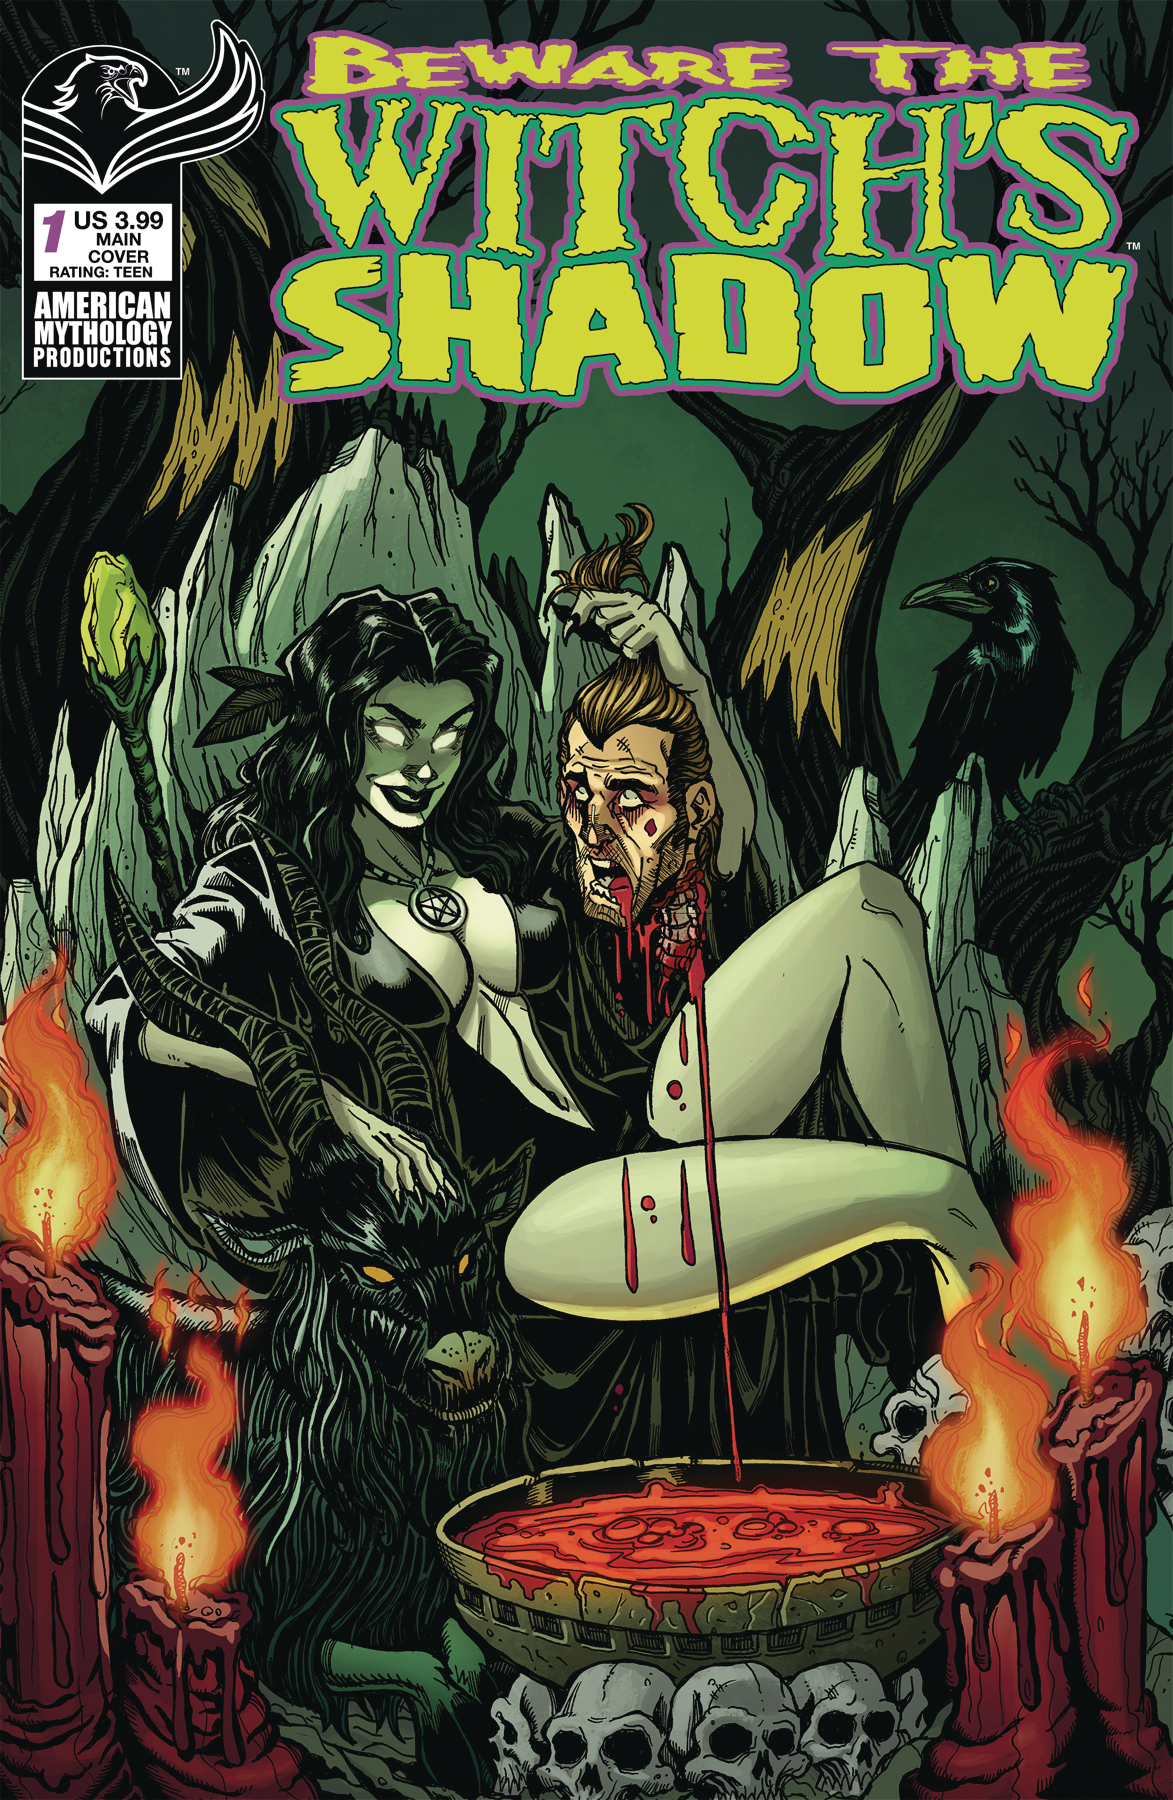 BEWARE THE WITCHS SHADOW #1 CVR A CALZADA